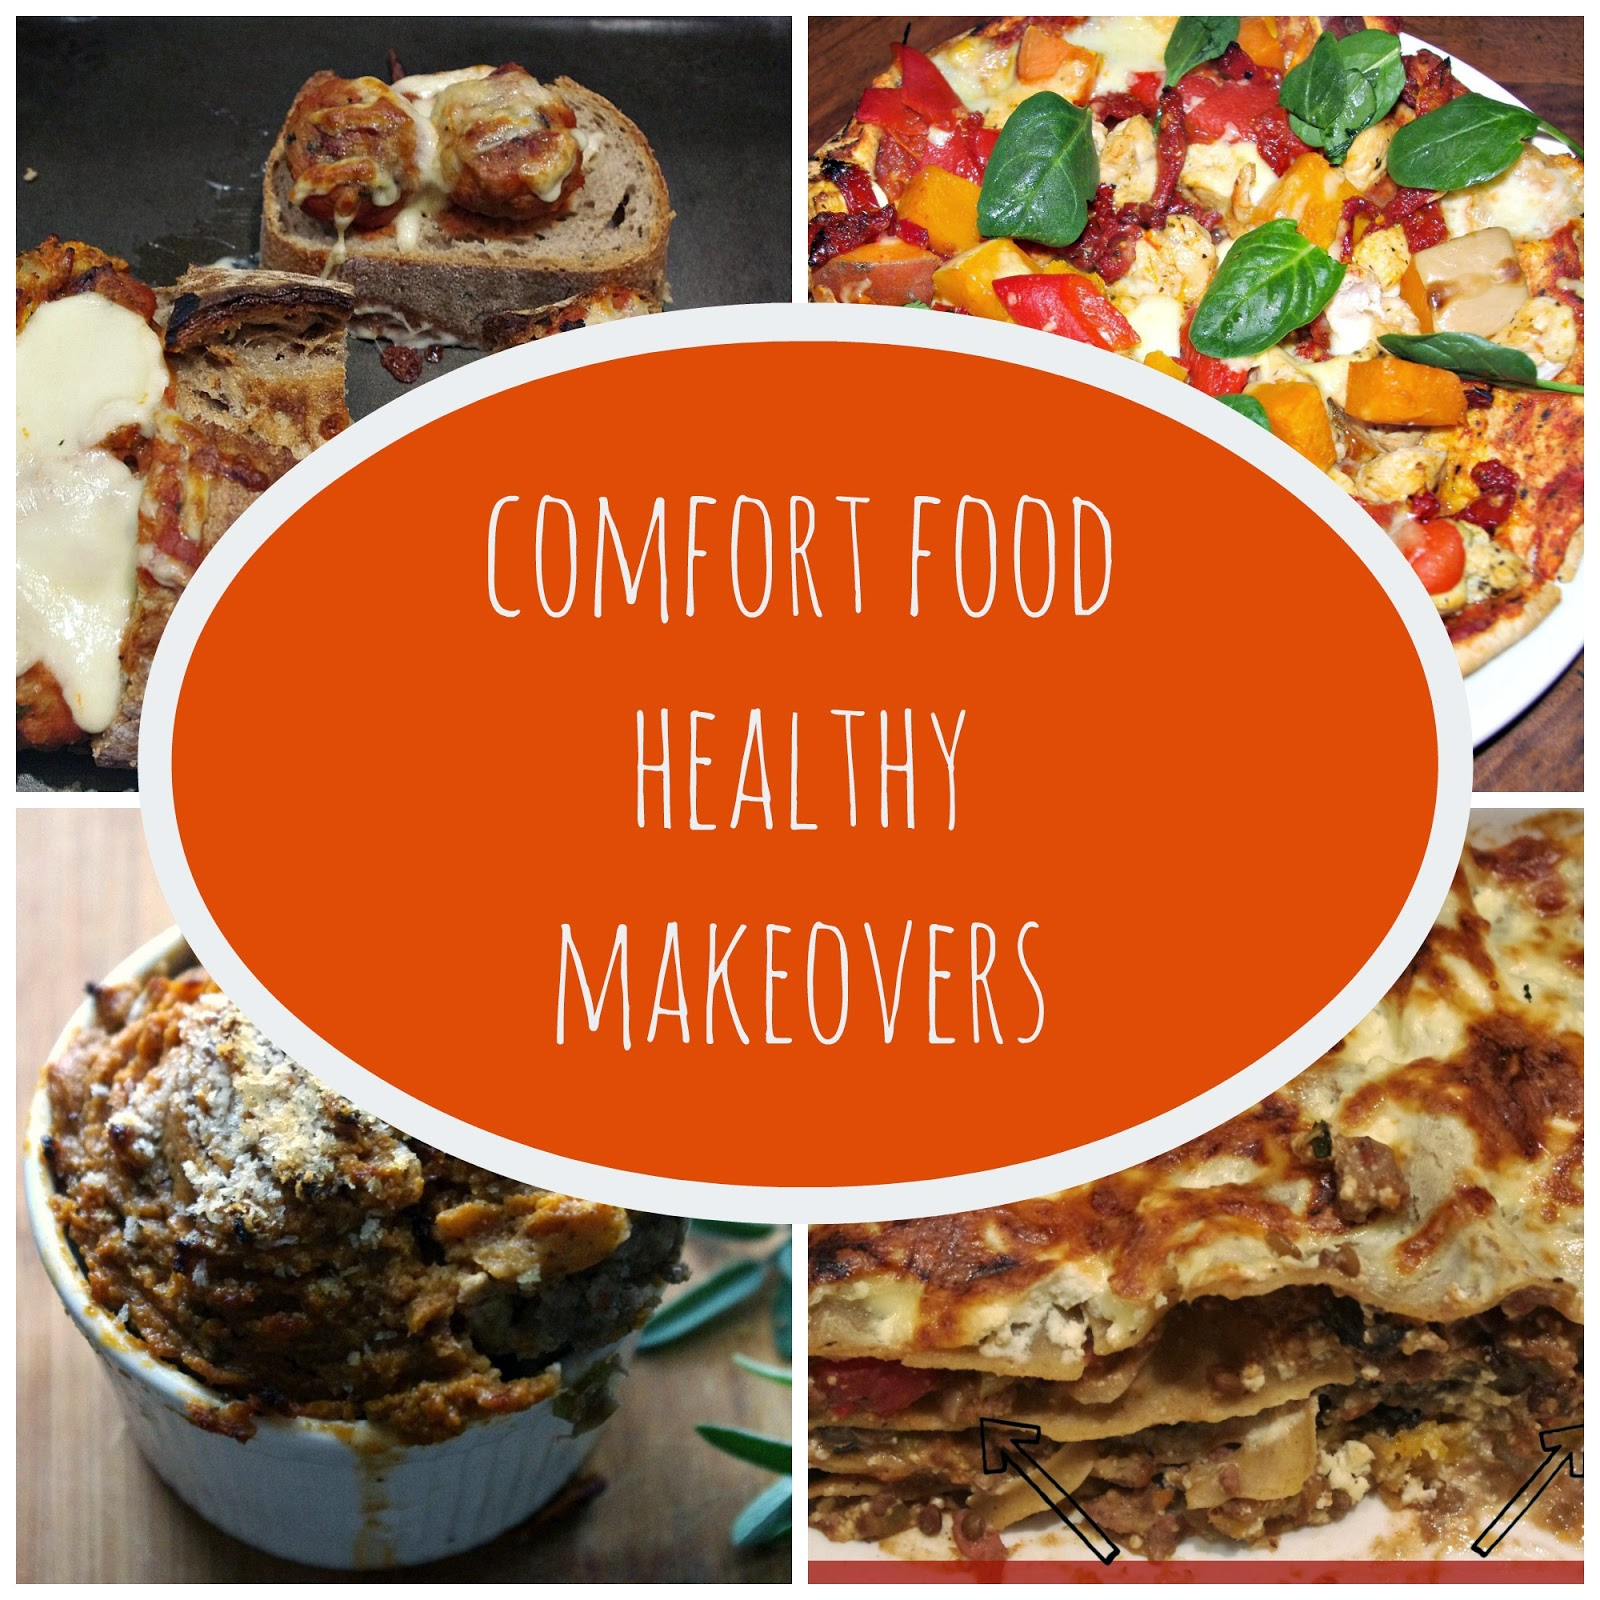 Comfort-food-healthy-makeovers